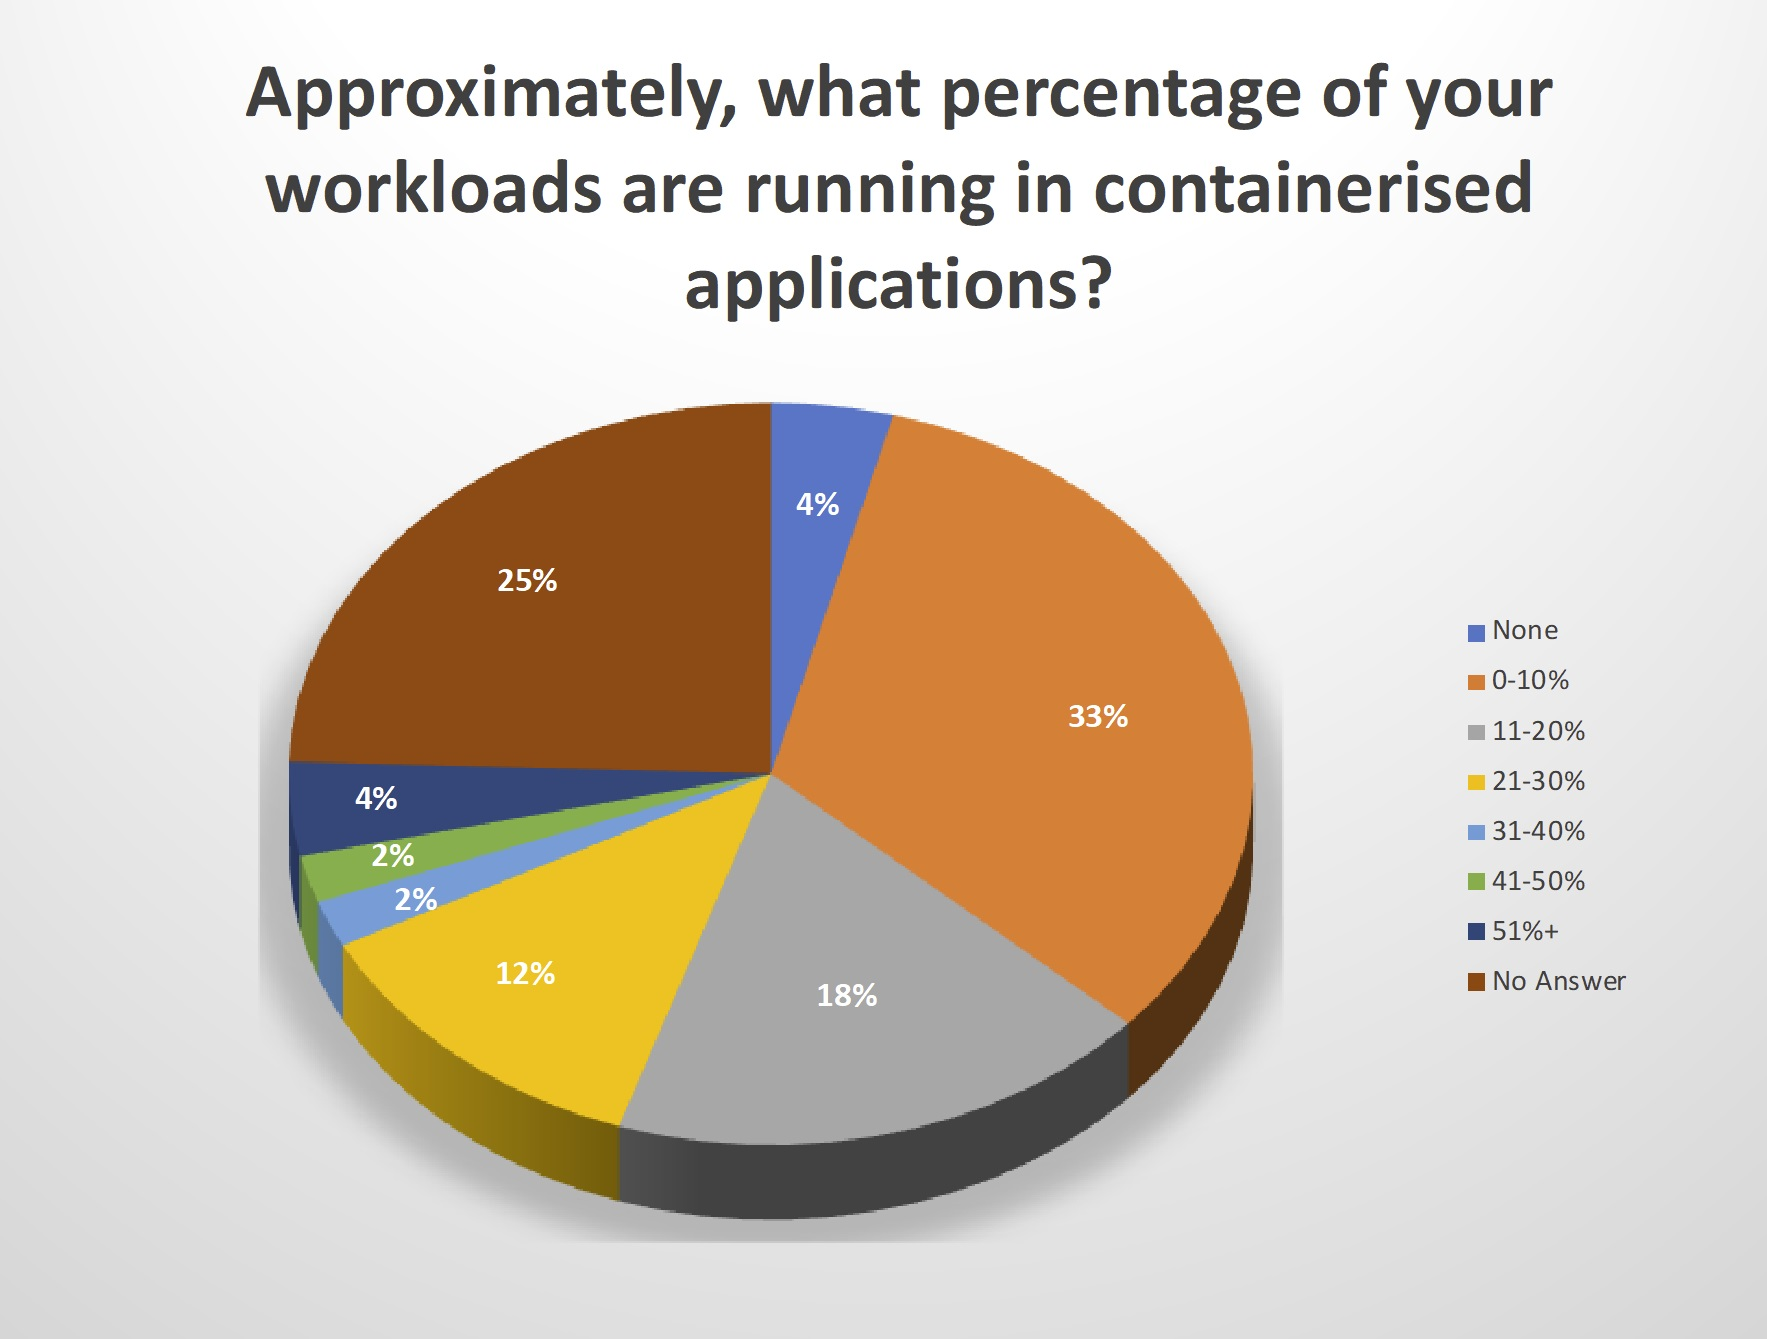 Approximate, percentage of workloads running in containerized applications